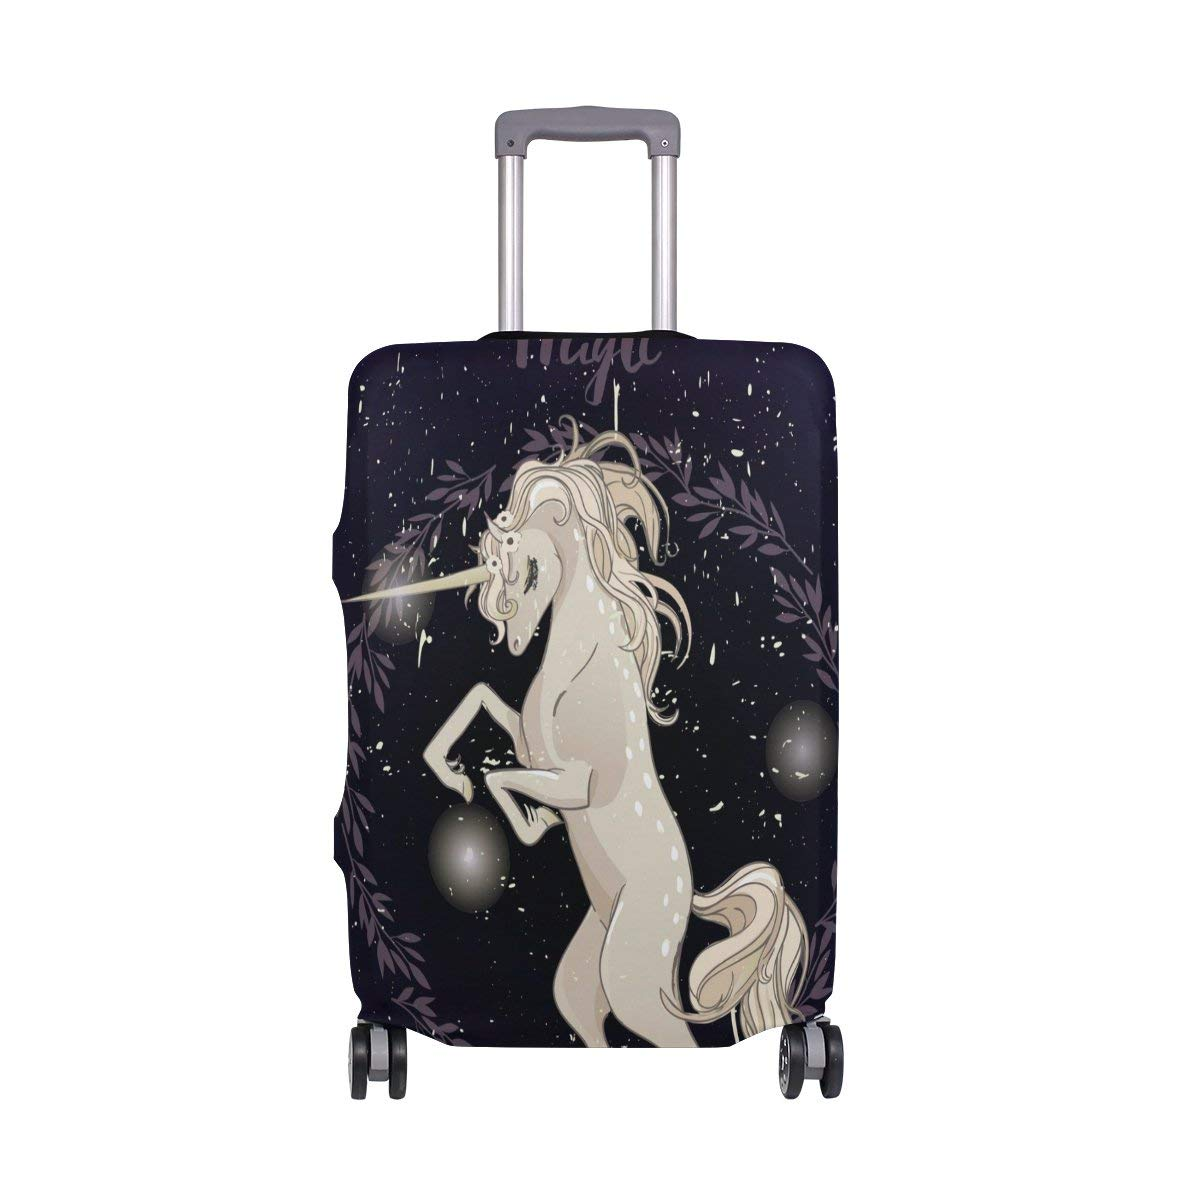 7c934919e Get Quotations · ALAZA Luggage Covers White Unicorn Luggage Covers  Protector Spandex Fit 18-32 inch